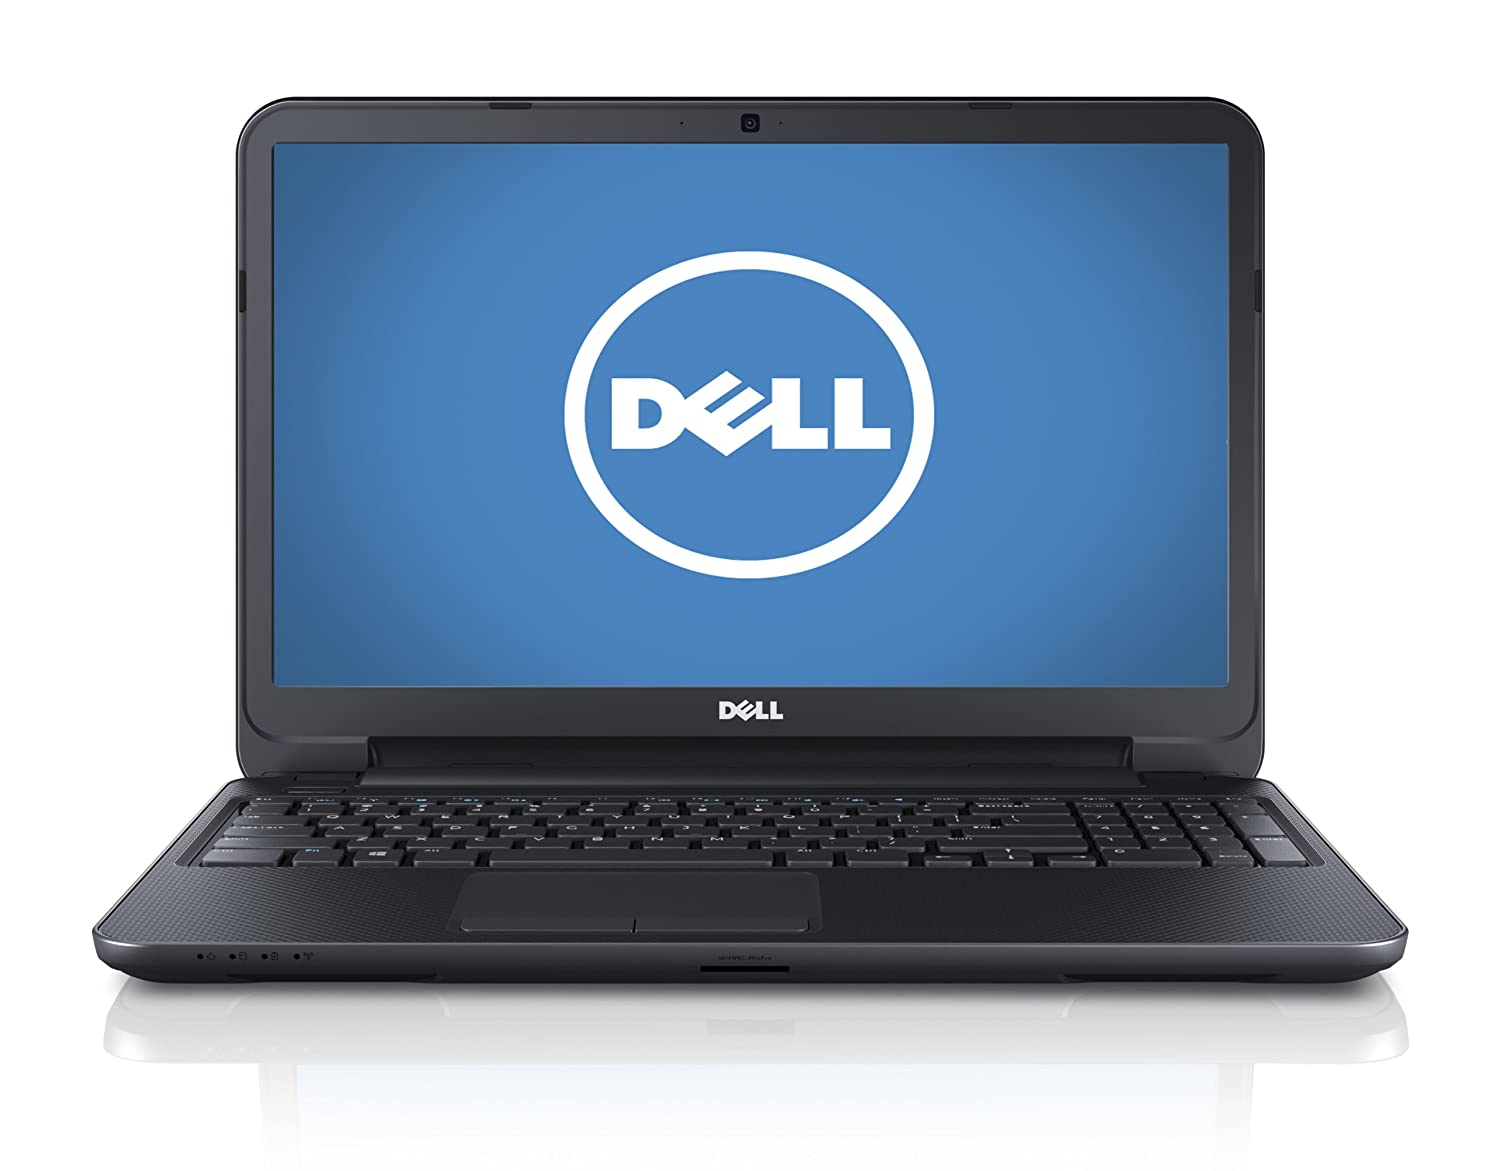 Dell Inspiron 15 i15RV-6190BLK 15.6-Inch Laptop